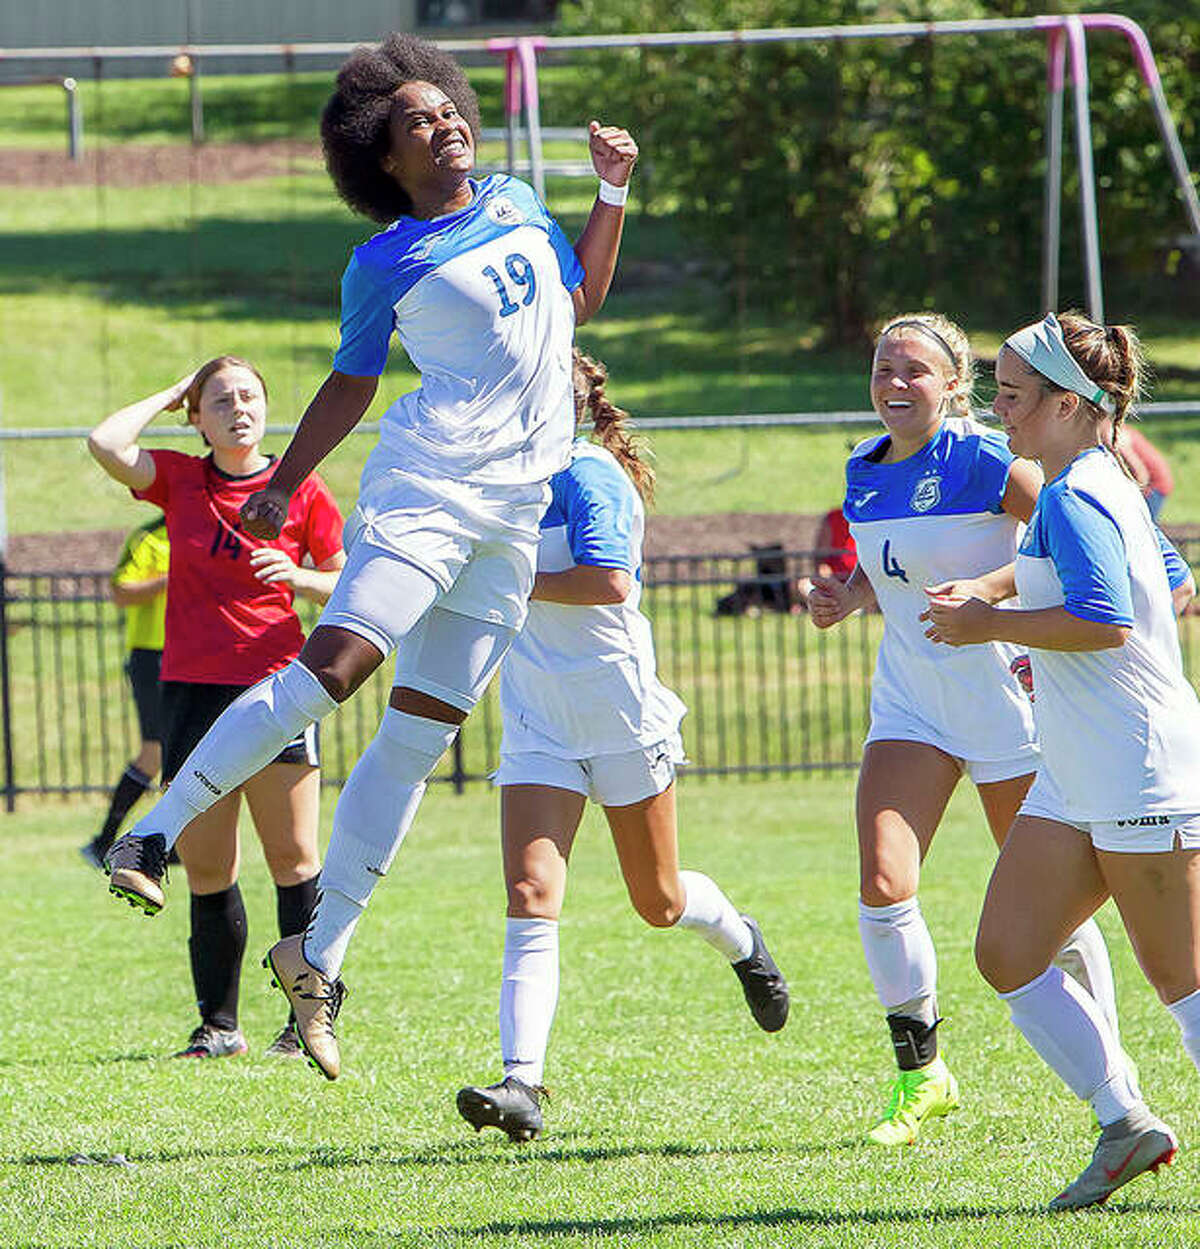 Freshman Chrissy Mitchell (19) leaps into the air to celebrate one of her two goals against Wabash Valley in Saturday's 2-0 Region 24 victory at Tim Rooney Stadium.